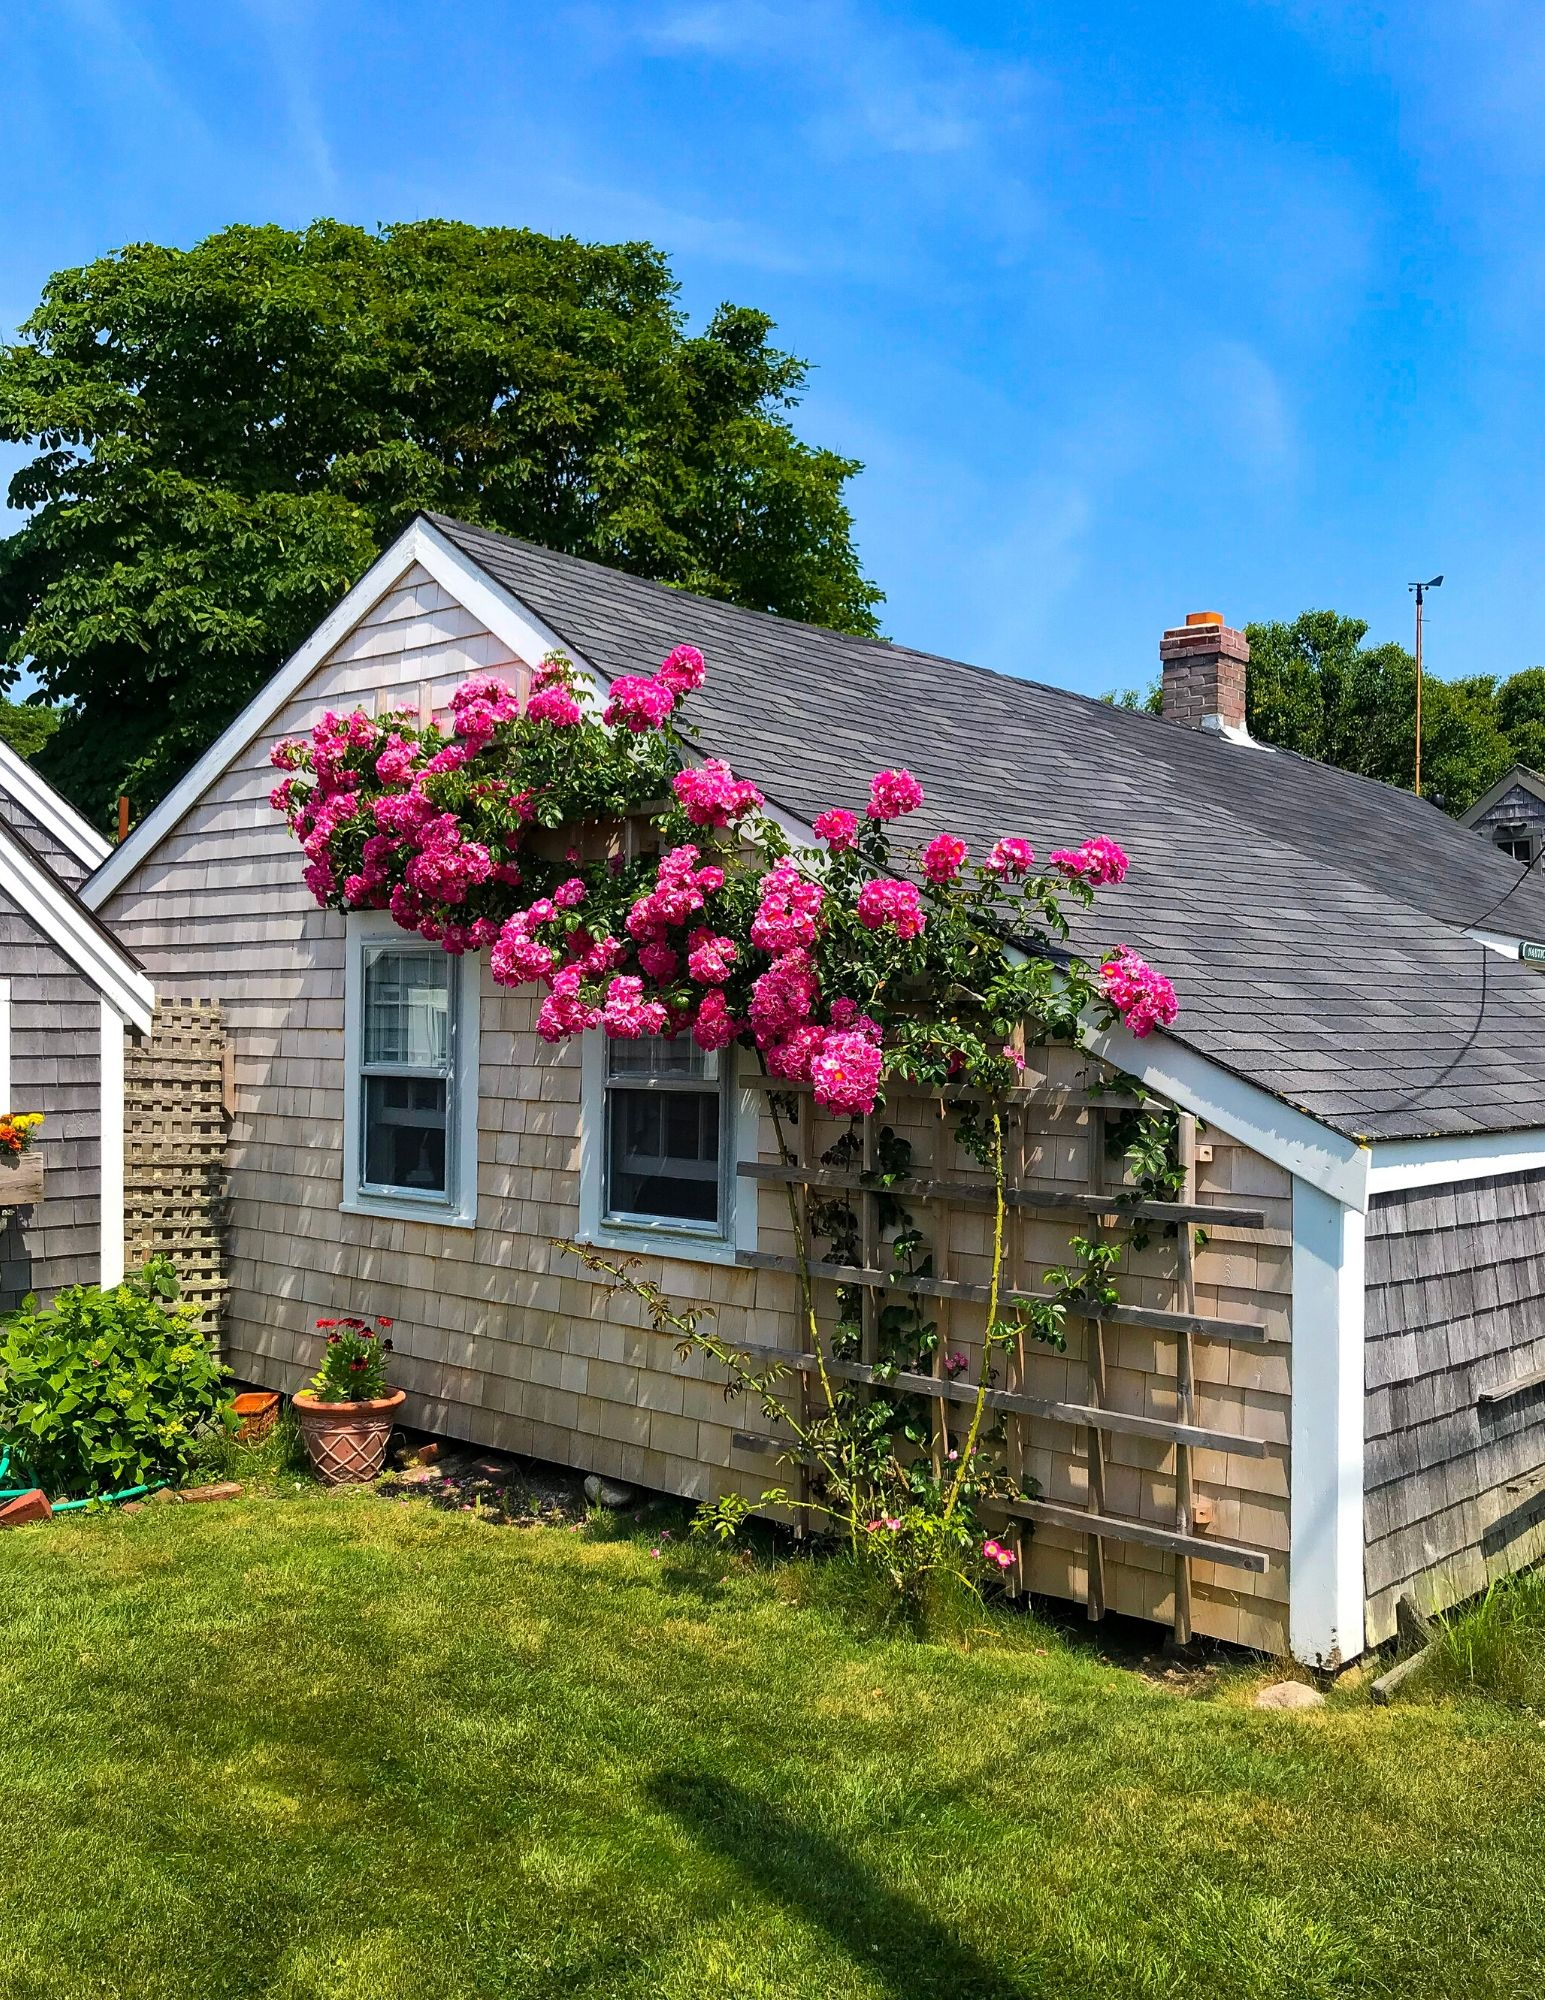 Nantucket Rose Covered Cottages in Sconset-18